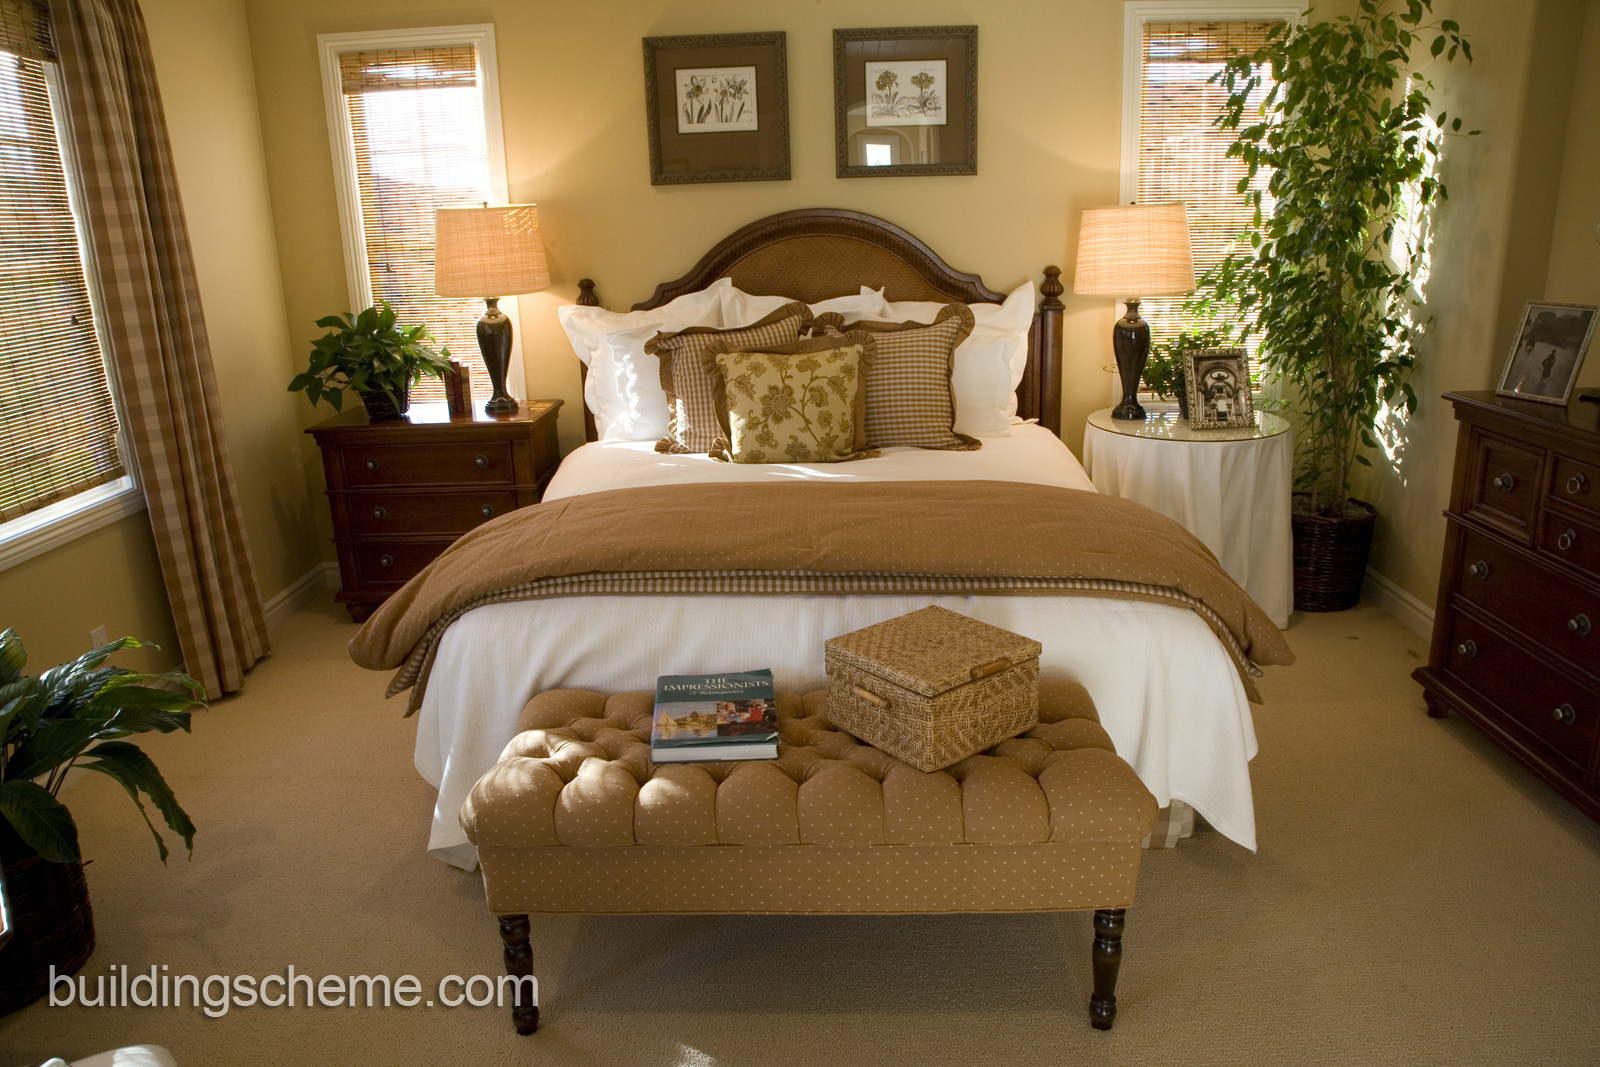 Elegant Bedroom Ideas Decorating 27 Decor Ideas  EnhancedHomesorg - Elegant Bedroom Decorating Ideas